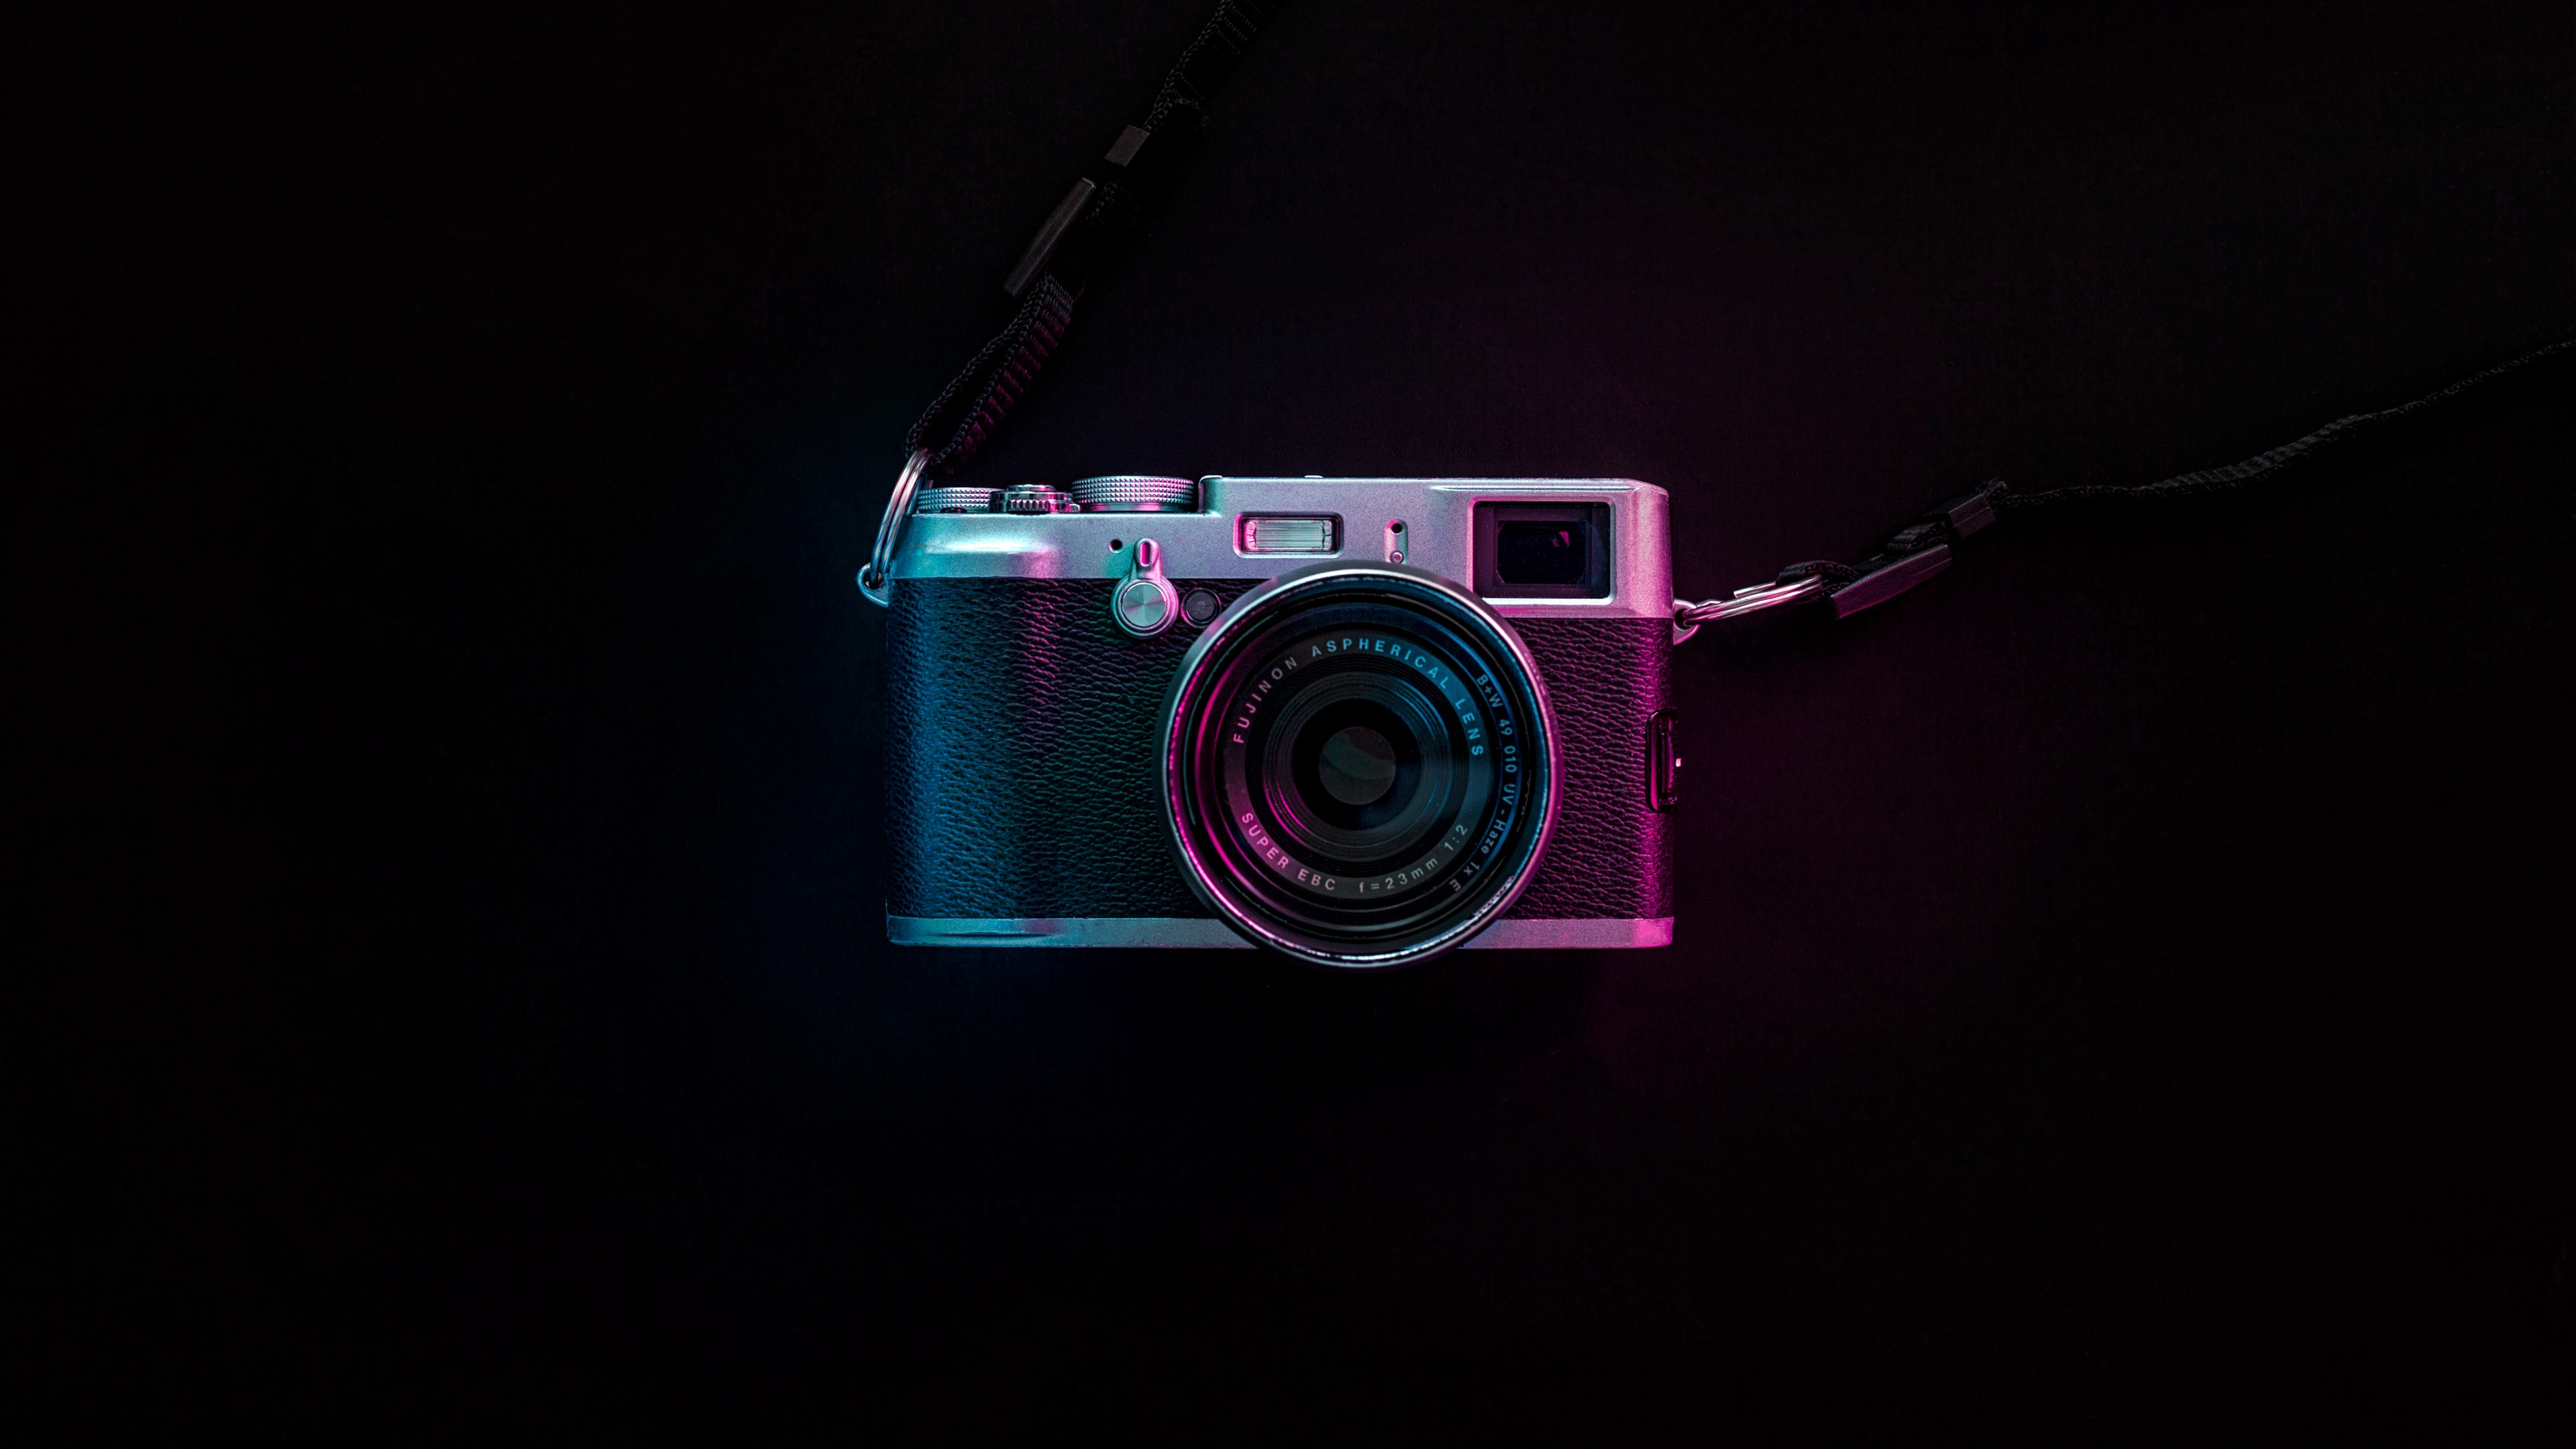 Vintage Camera Fujinon With Neon Lights Wallpaper 4k Ultra